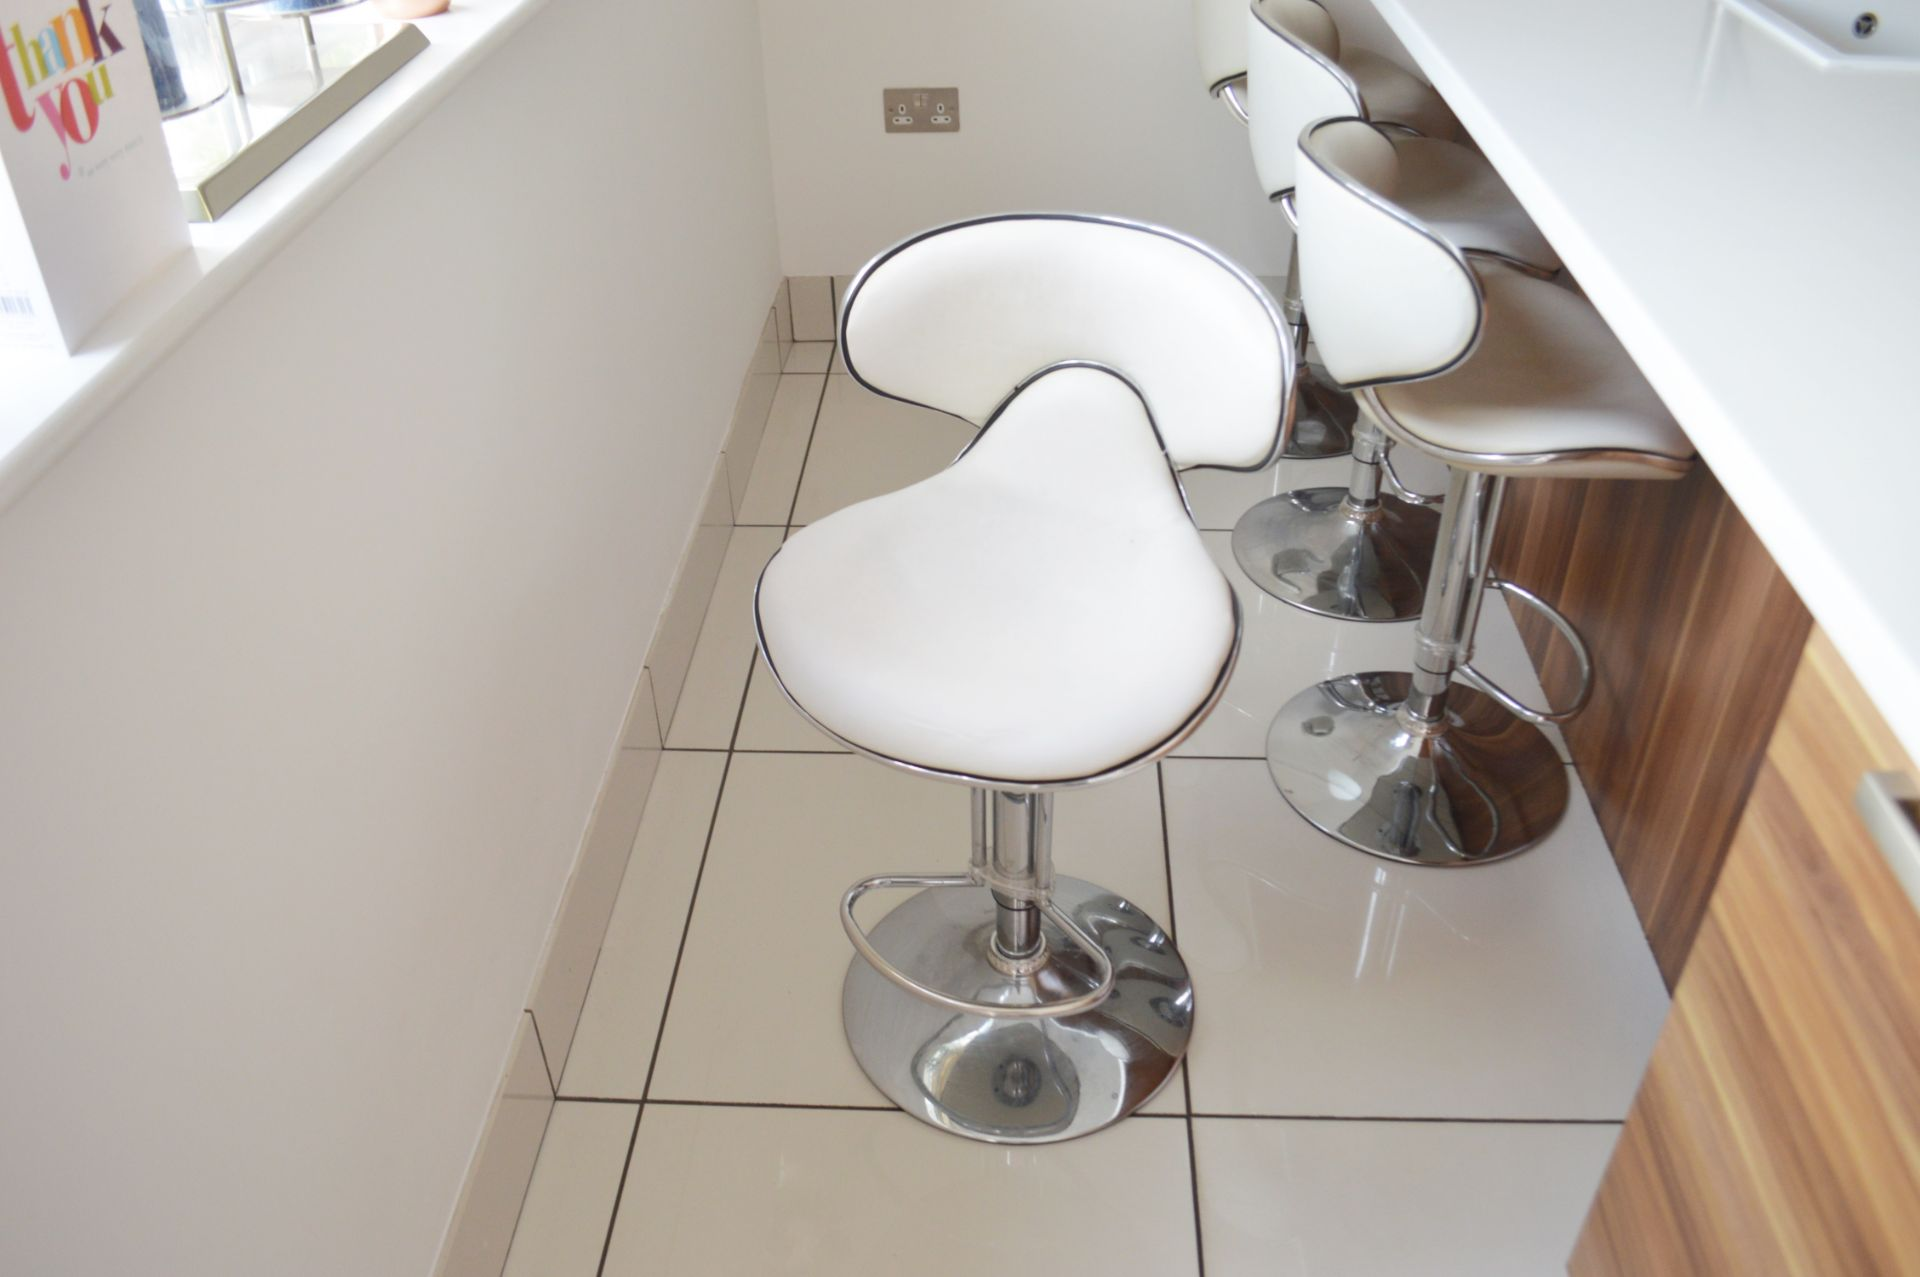 1 x Contemporary Bespoke Fitted Kitchen With Integrated Neff Branded Appliances, Quartz Worktops - Image 21 of 52